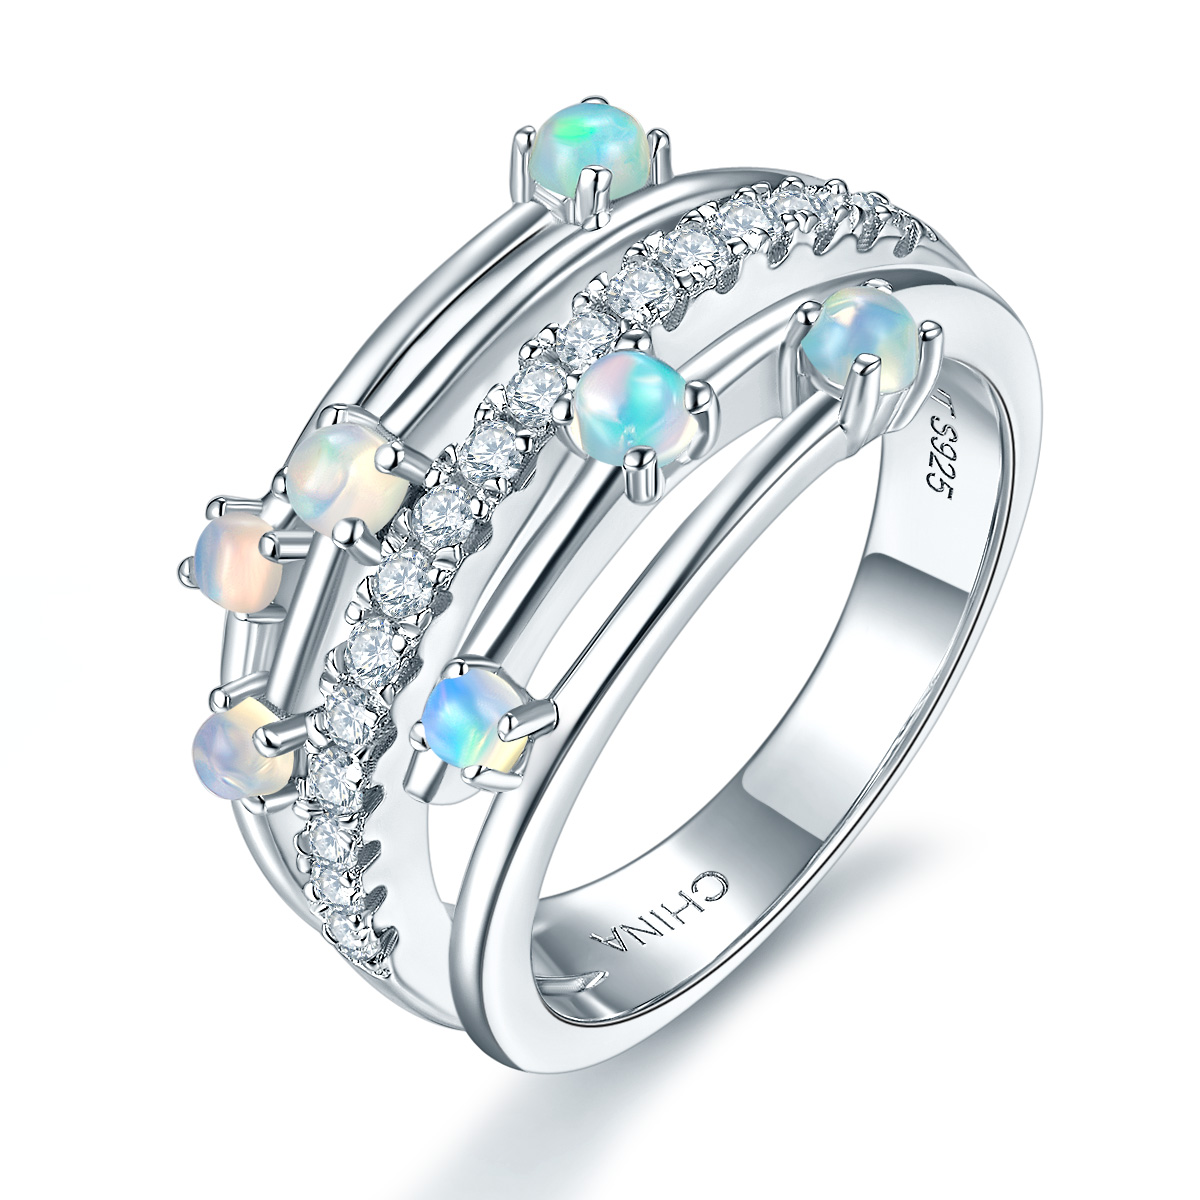 Hutang Natural Opal Ring Solid 925 Sterling Silver Gemstone Fine Brand Jewelry for Women Xmas Gift 2017 New Arrival